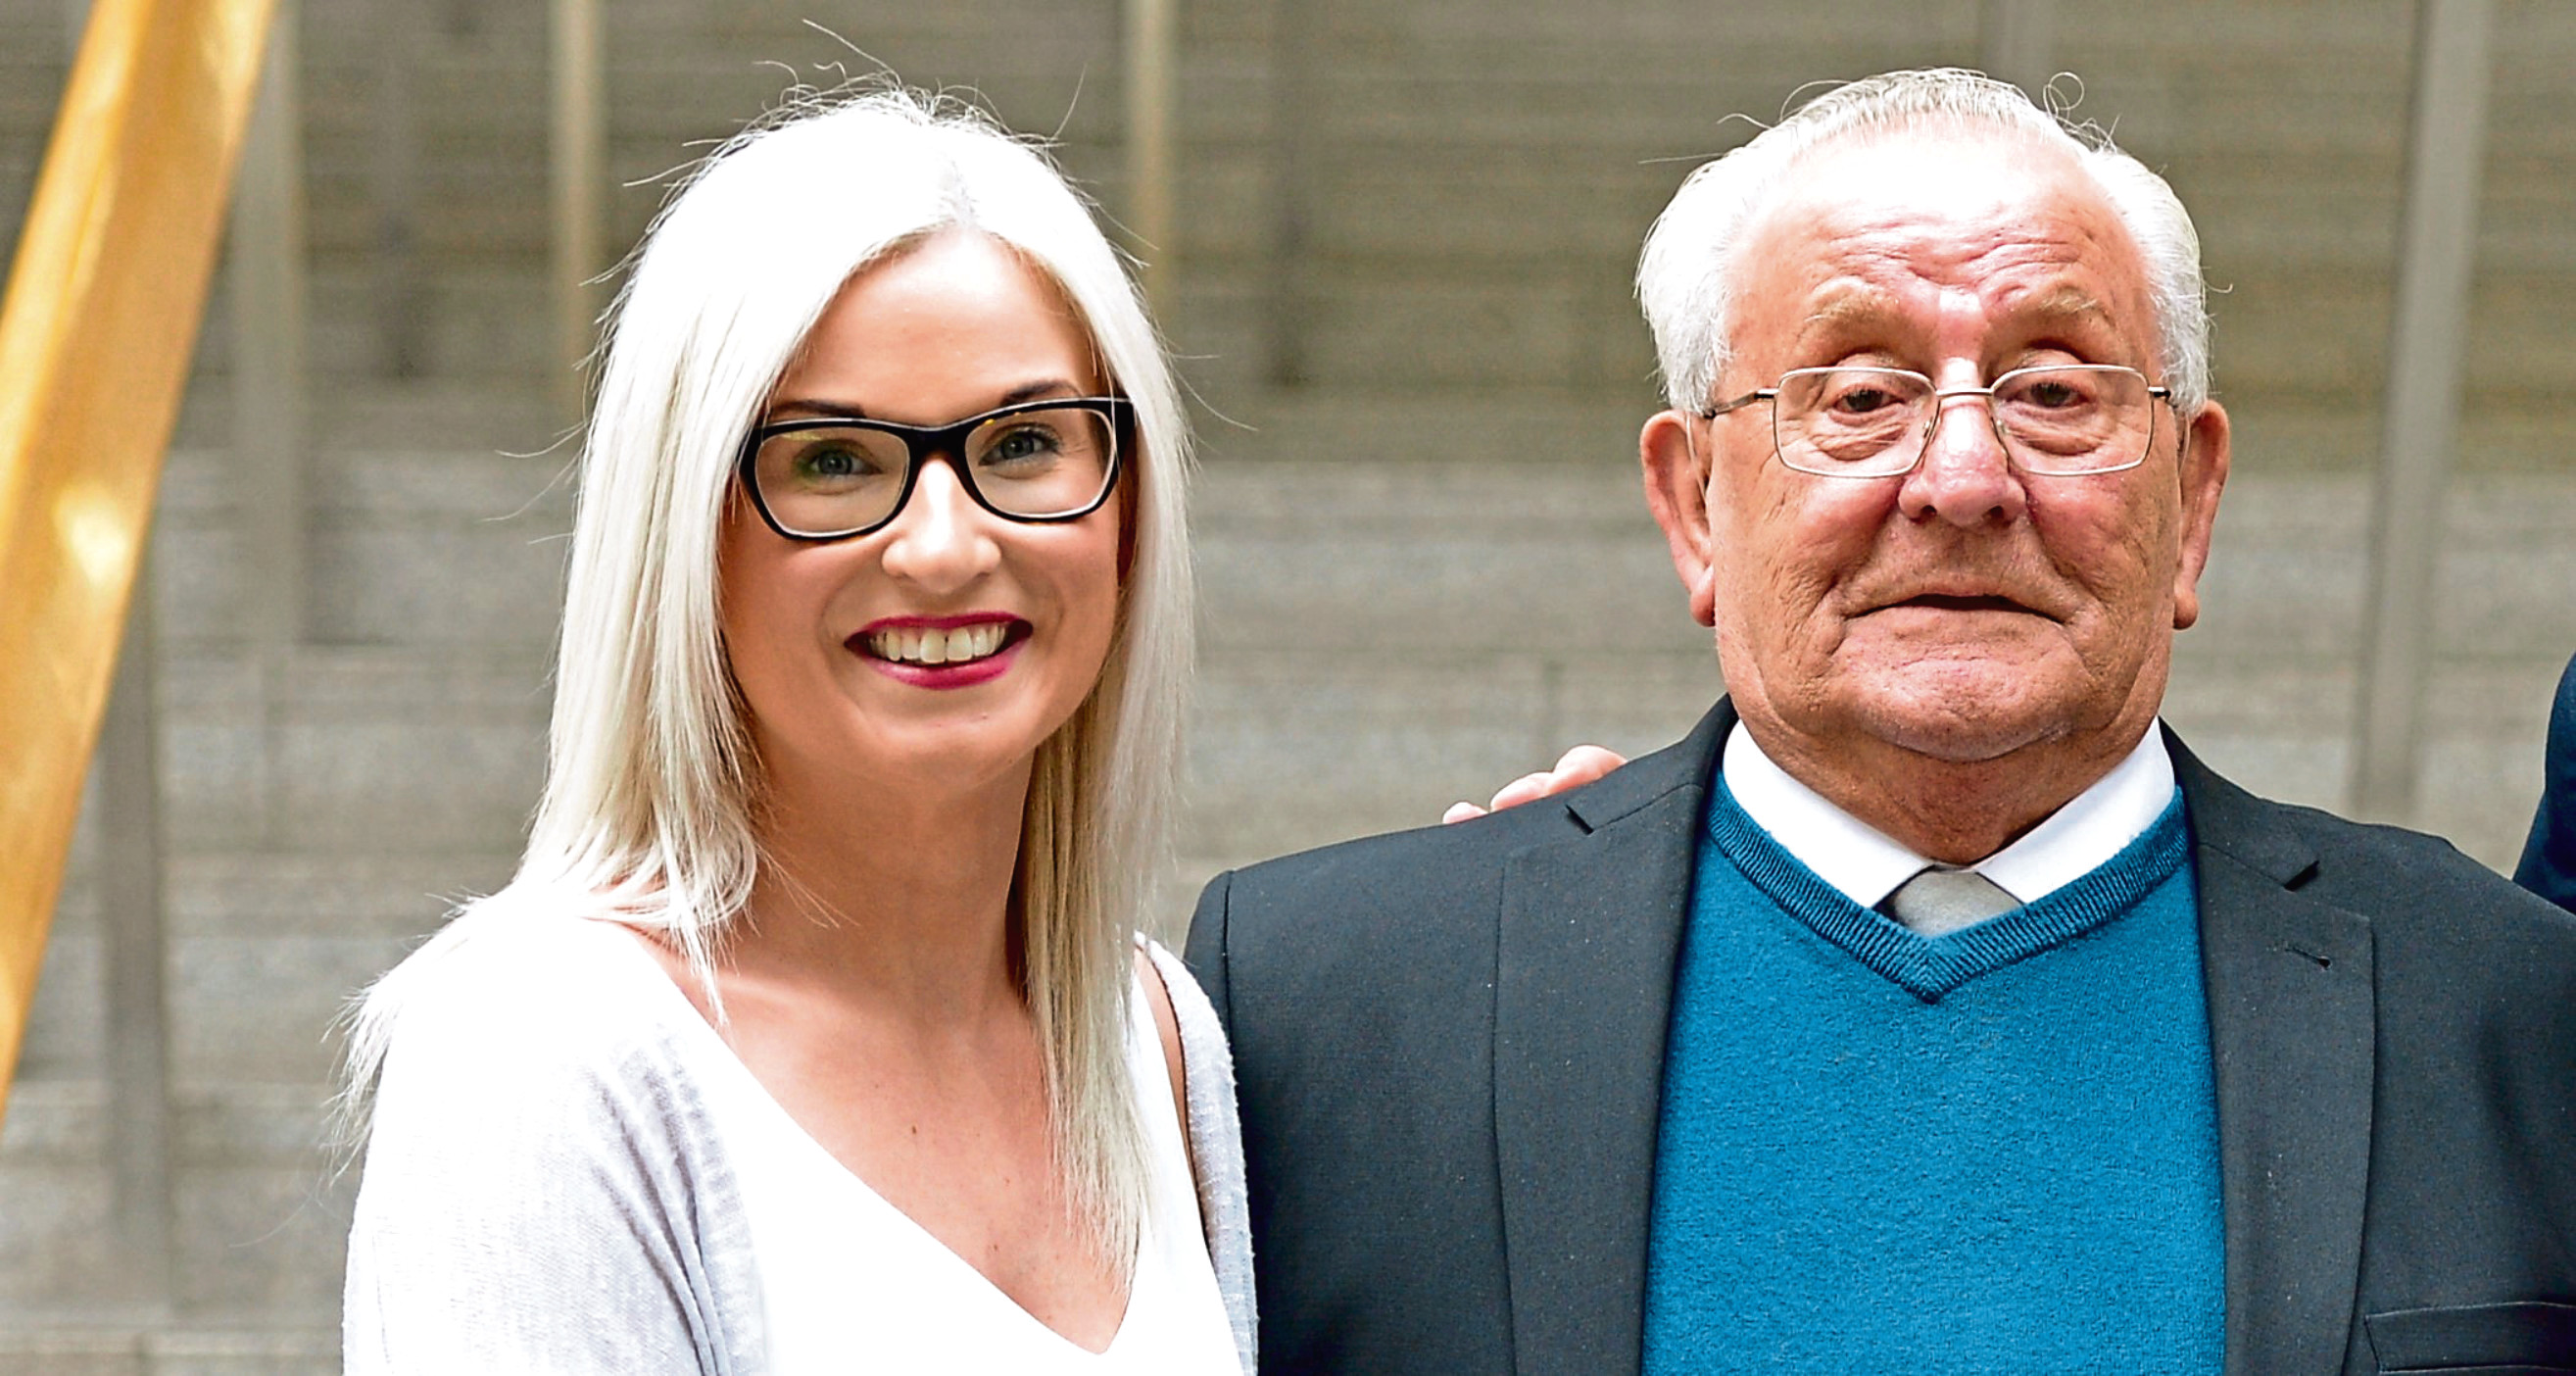 Gilly Murray with David Ramsay Snr - the niece and father of suicide victim David Ramsay Jnr.